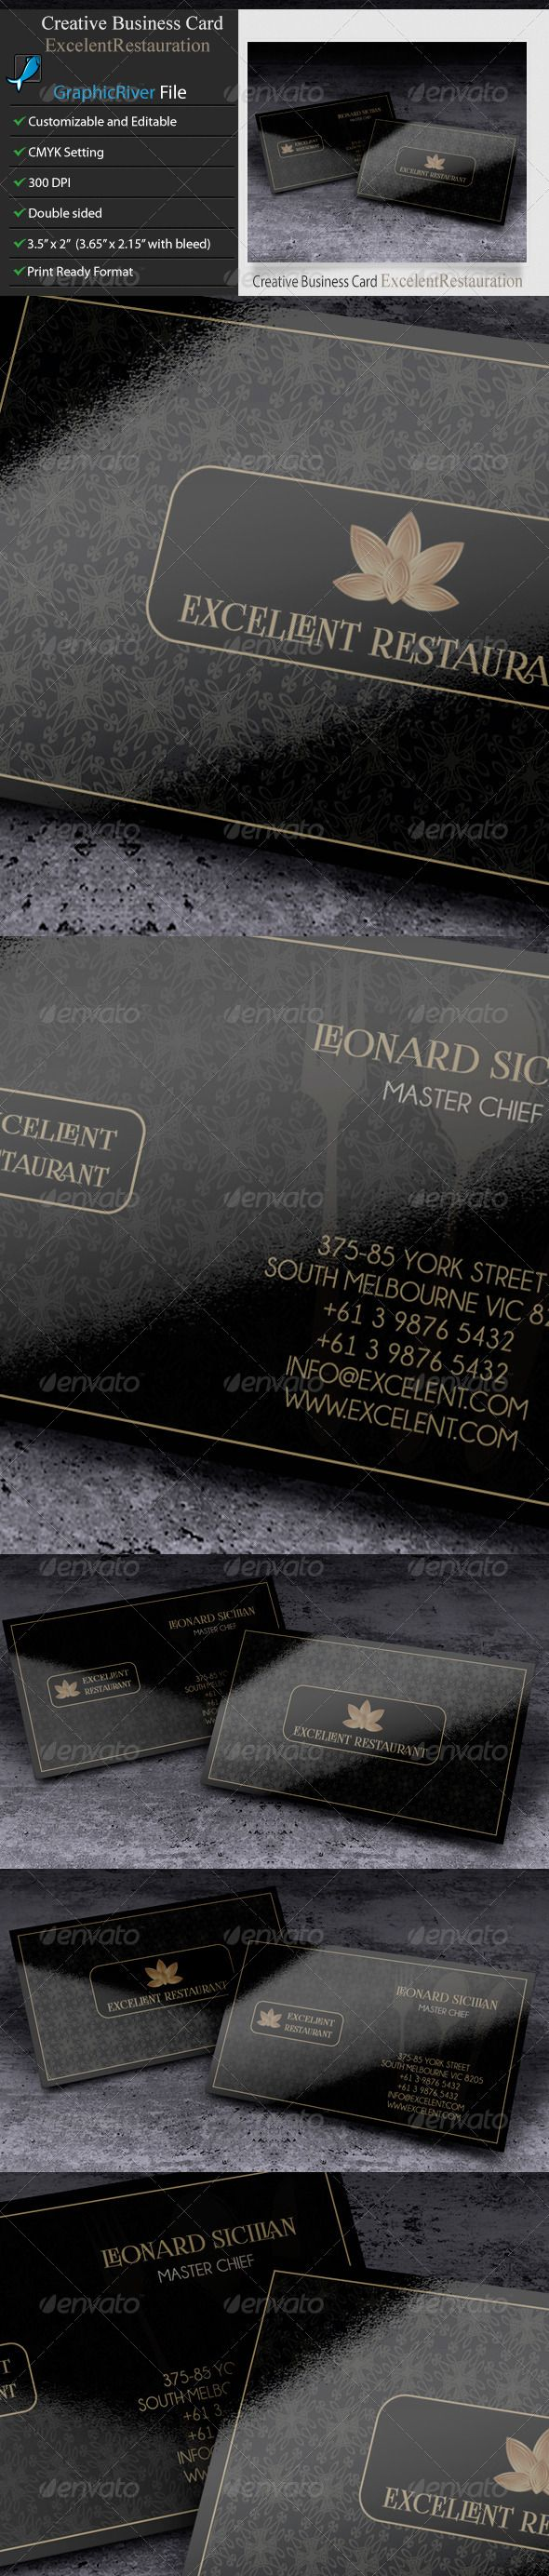 Creative Business Card –Excelent Restauration